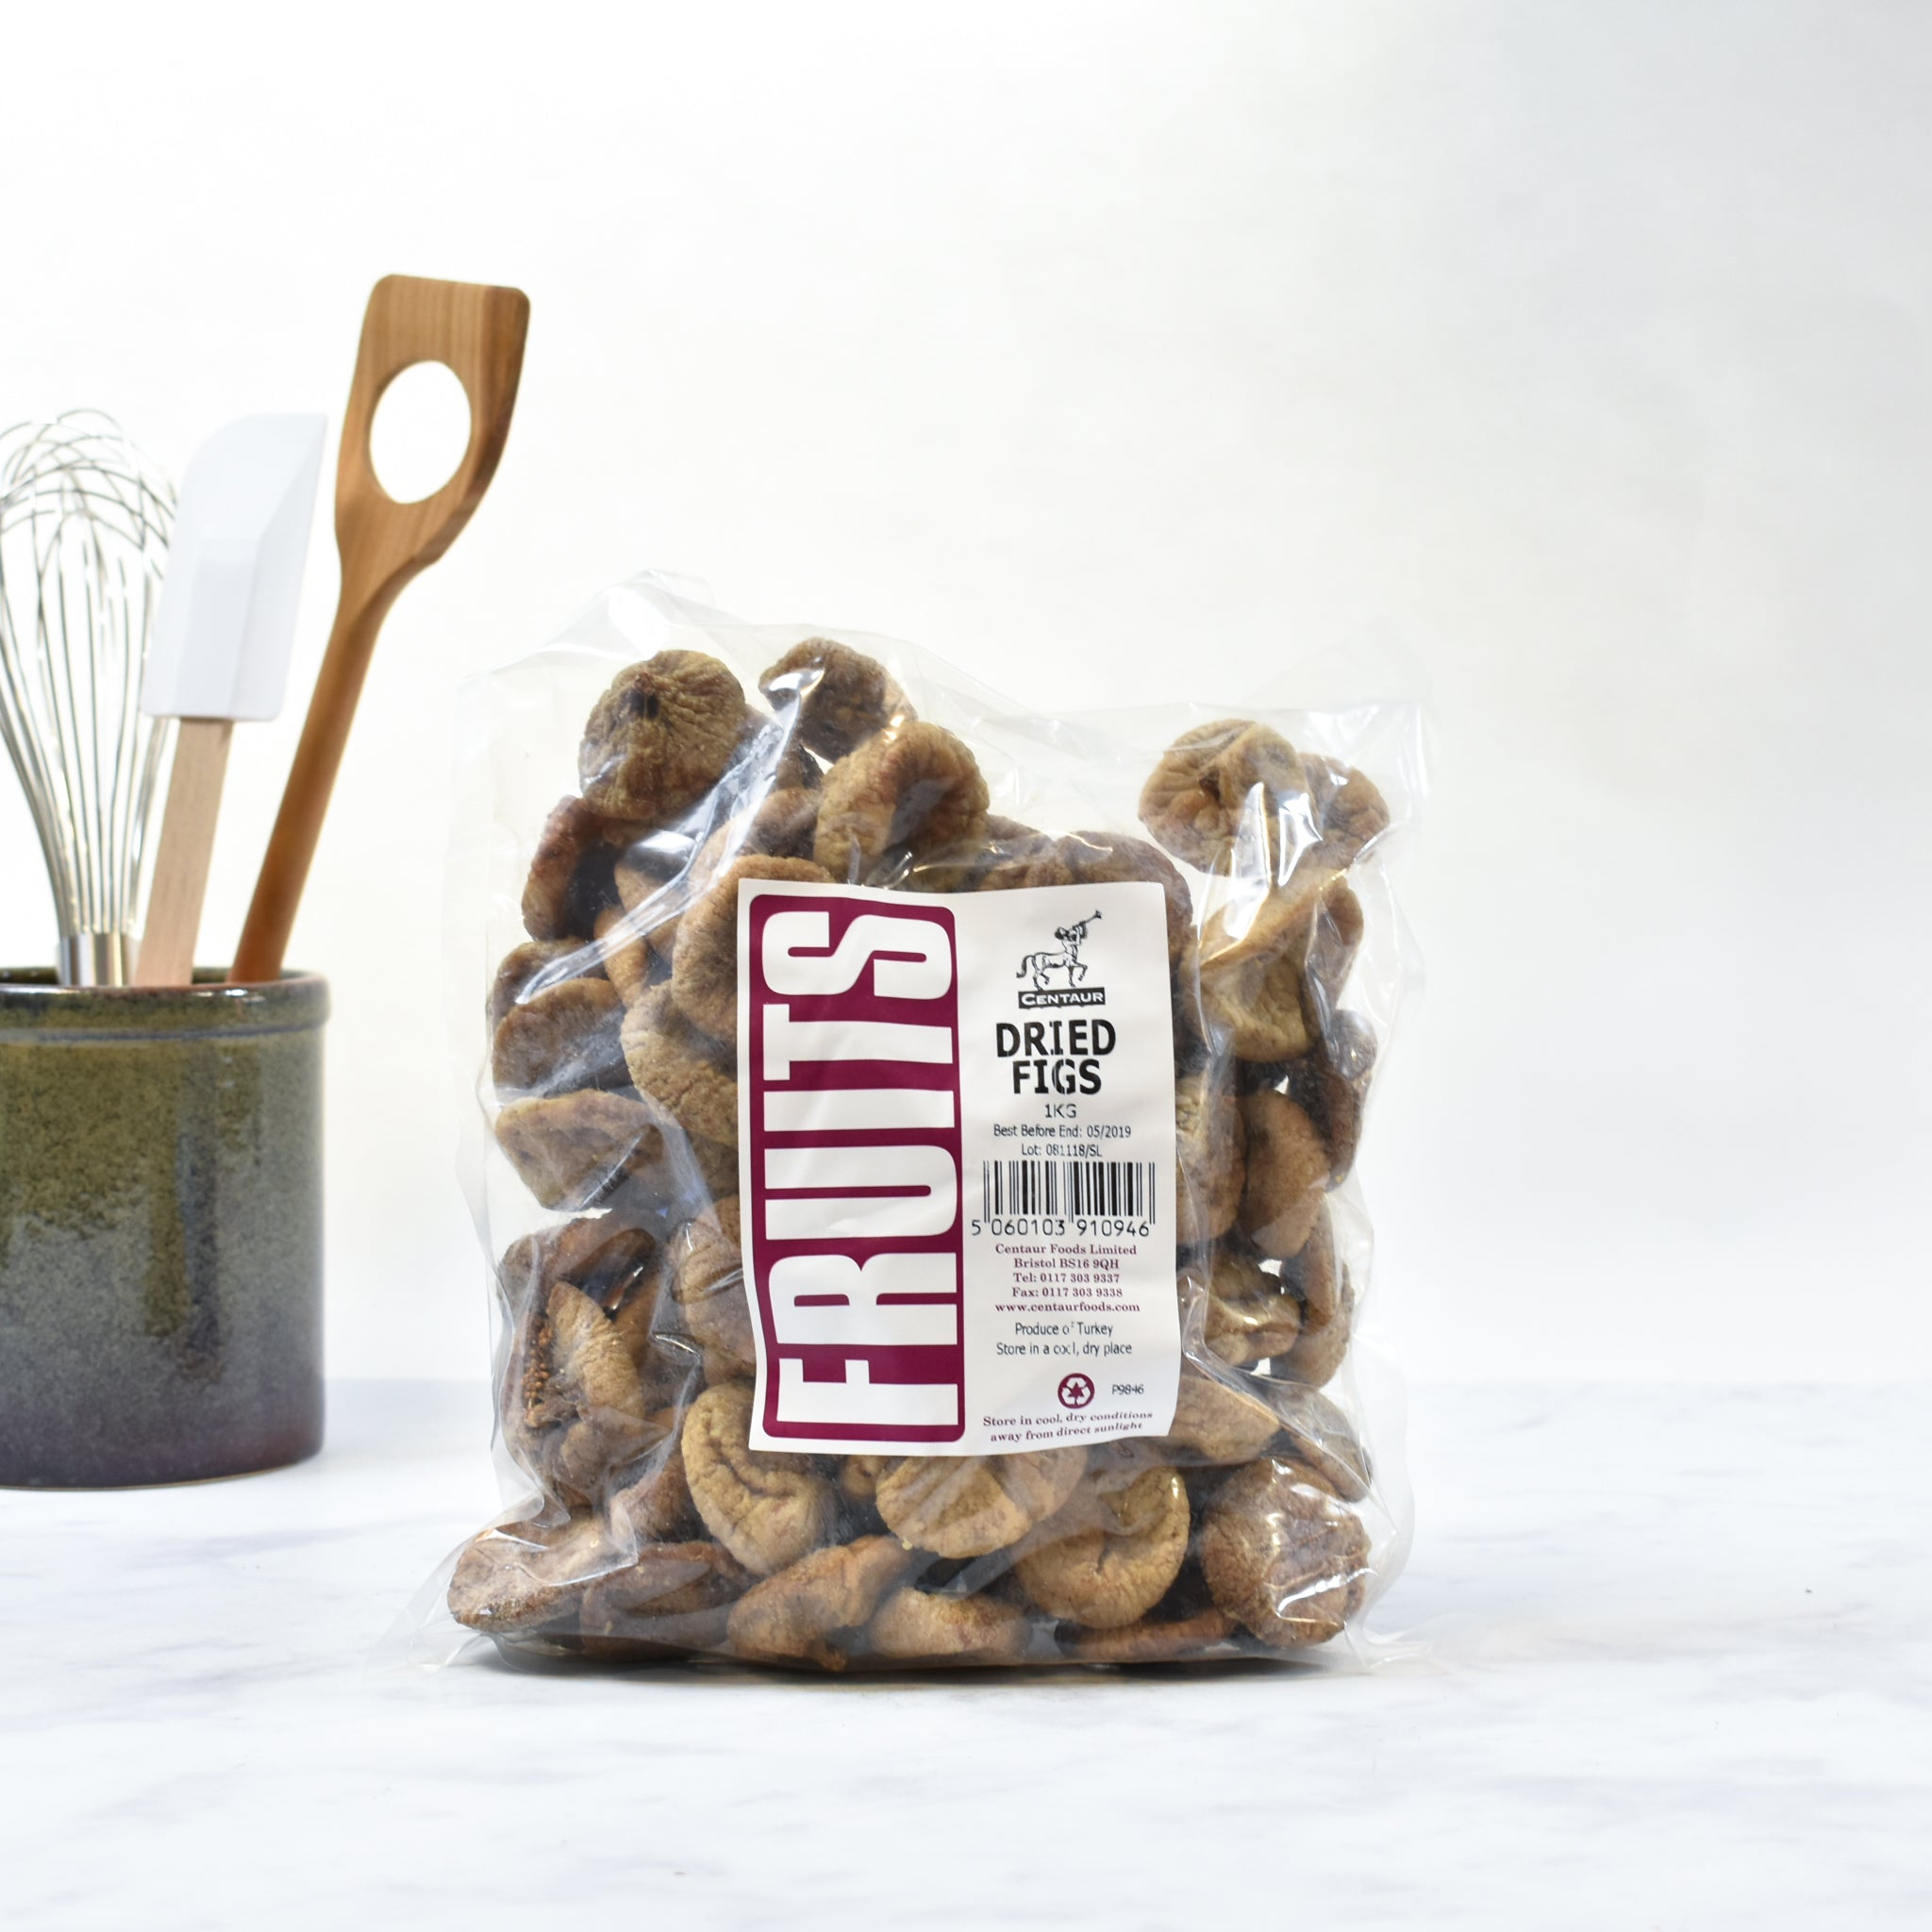 Dried Figs 1kg lifestyle photograph